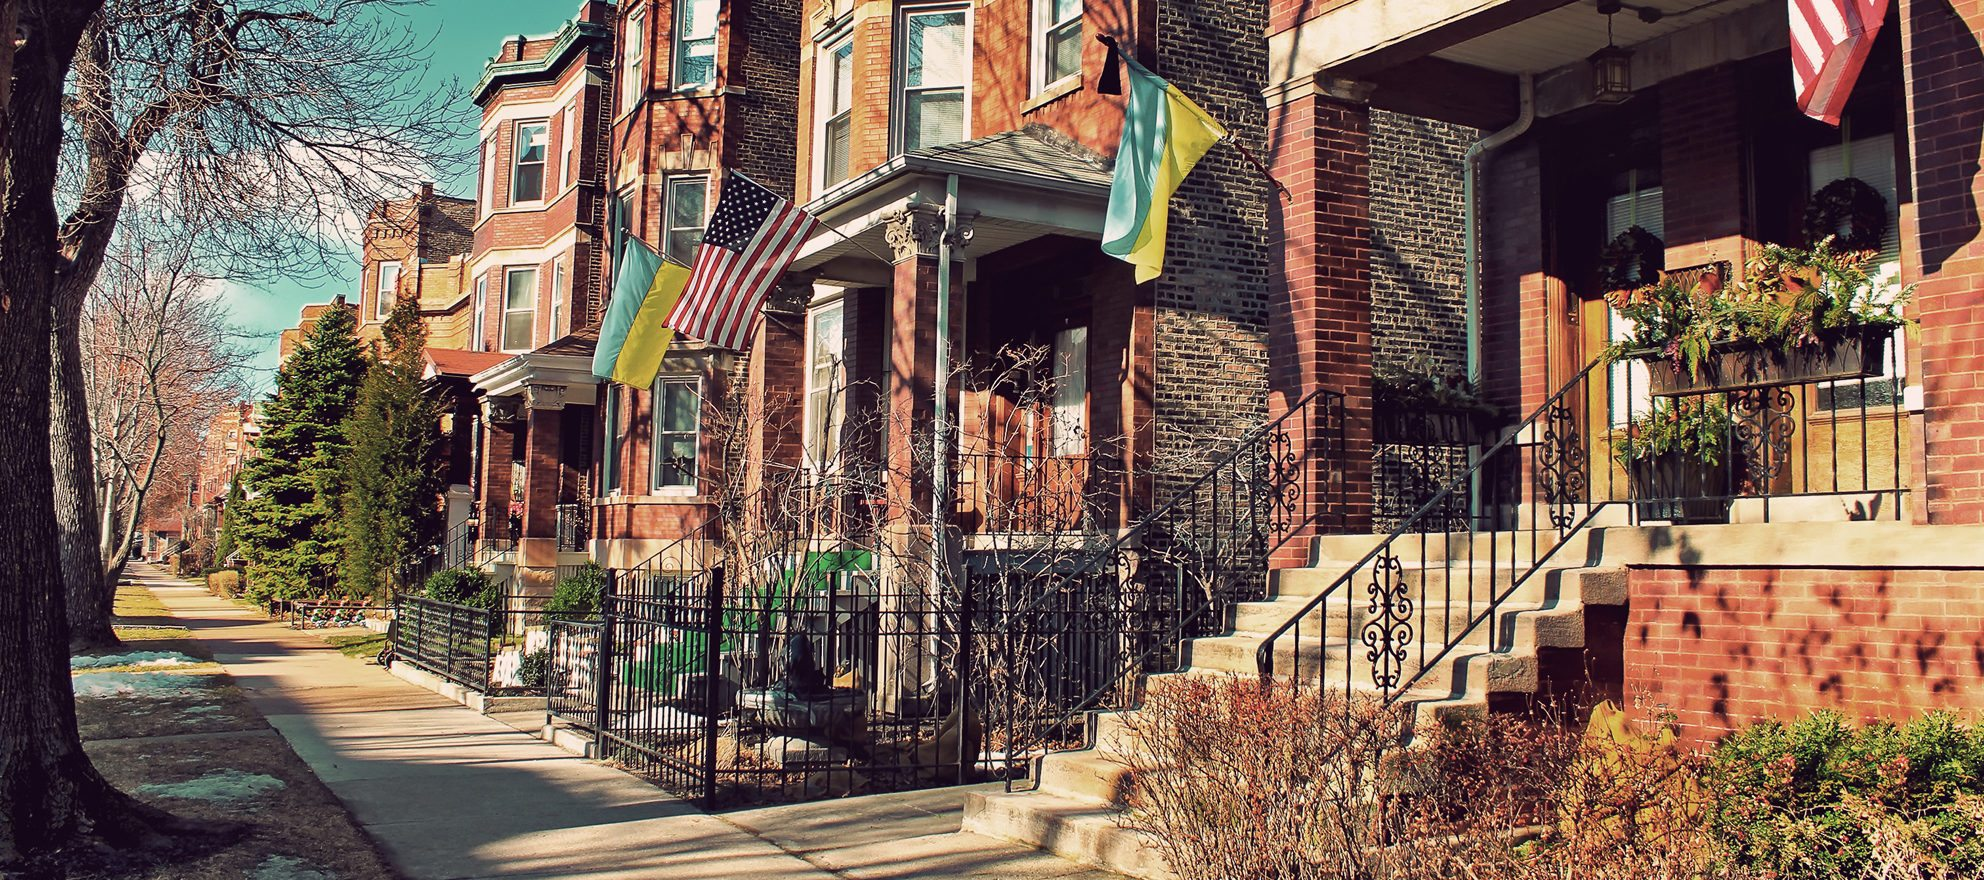 Redfin ranks Ukrainian Village